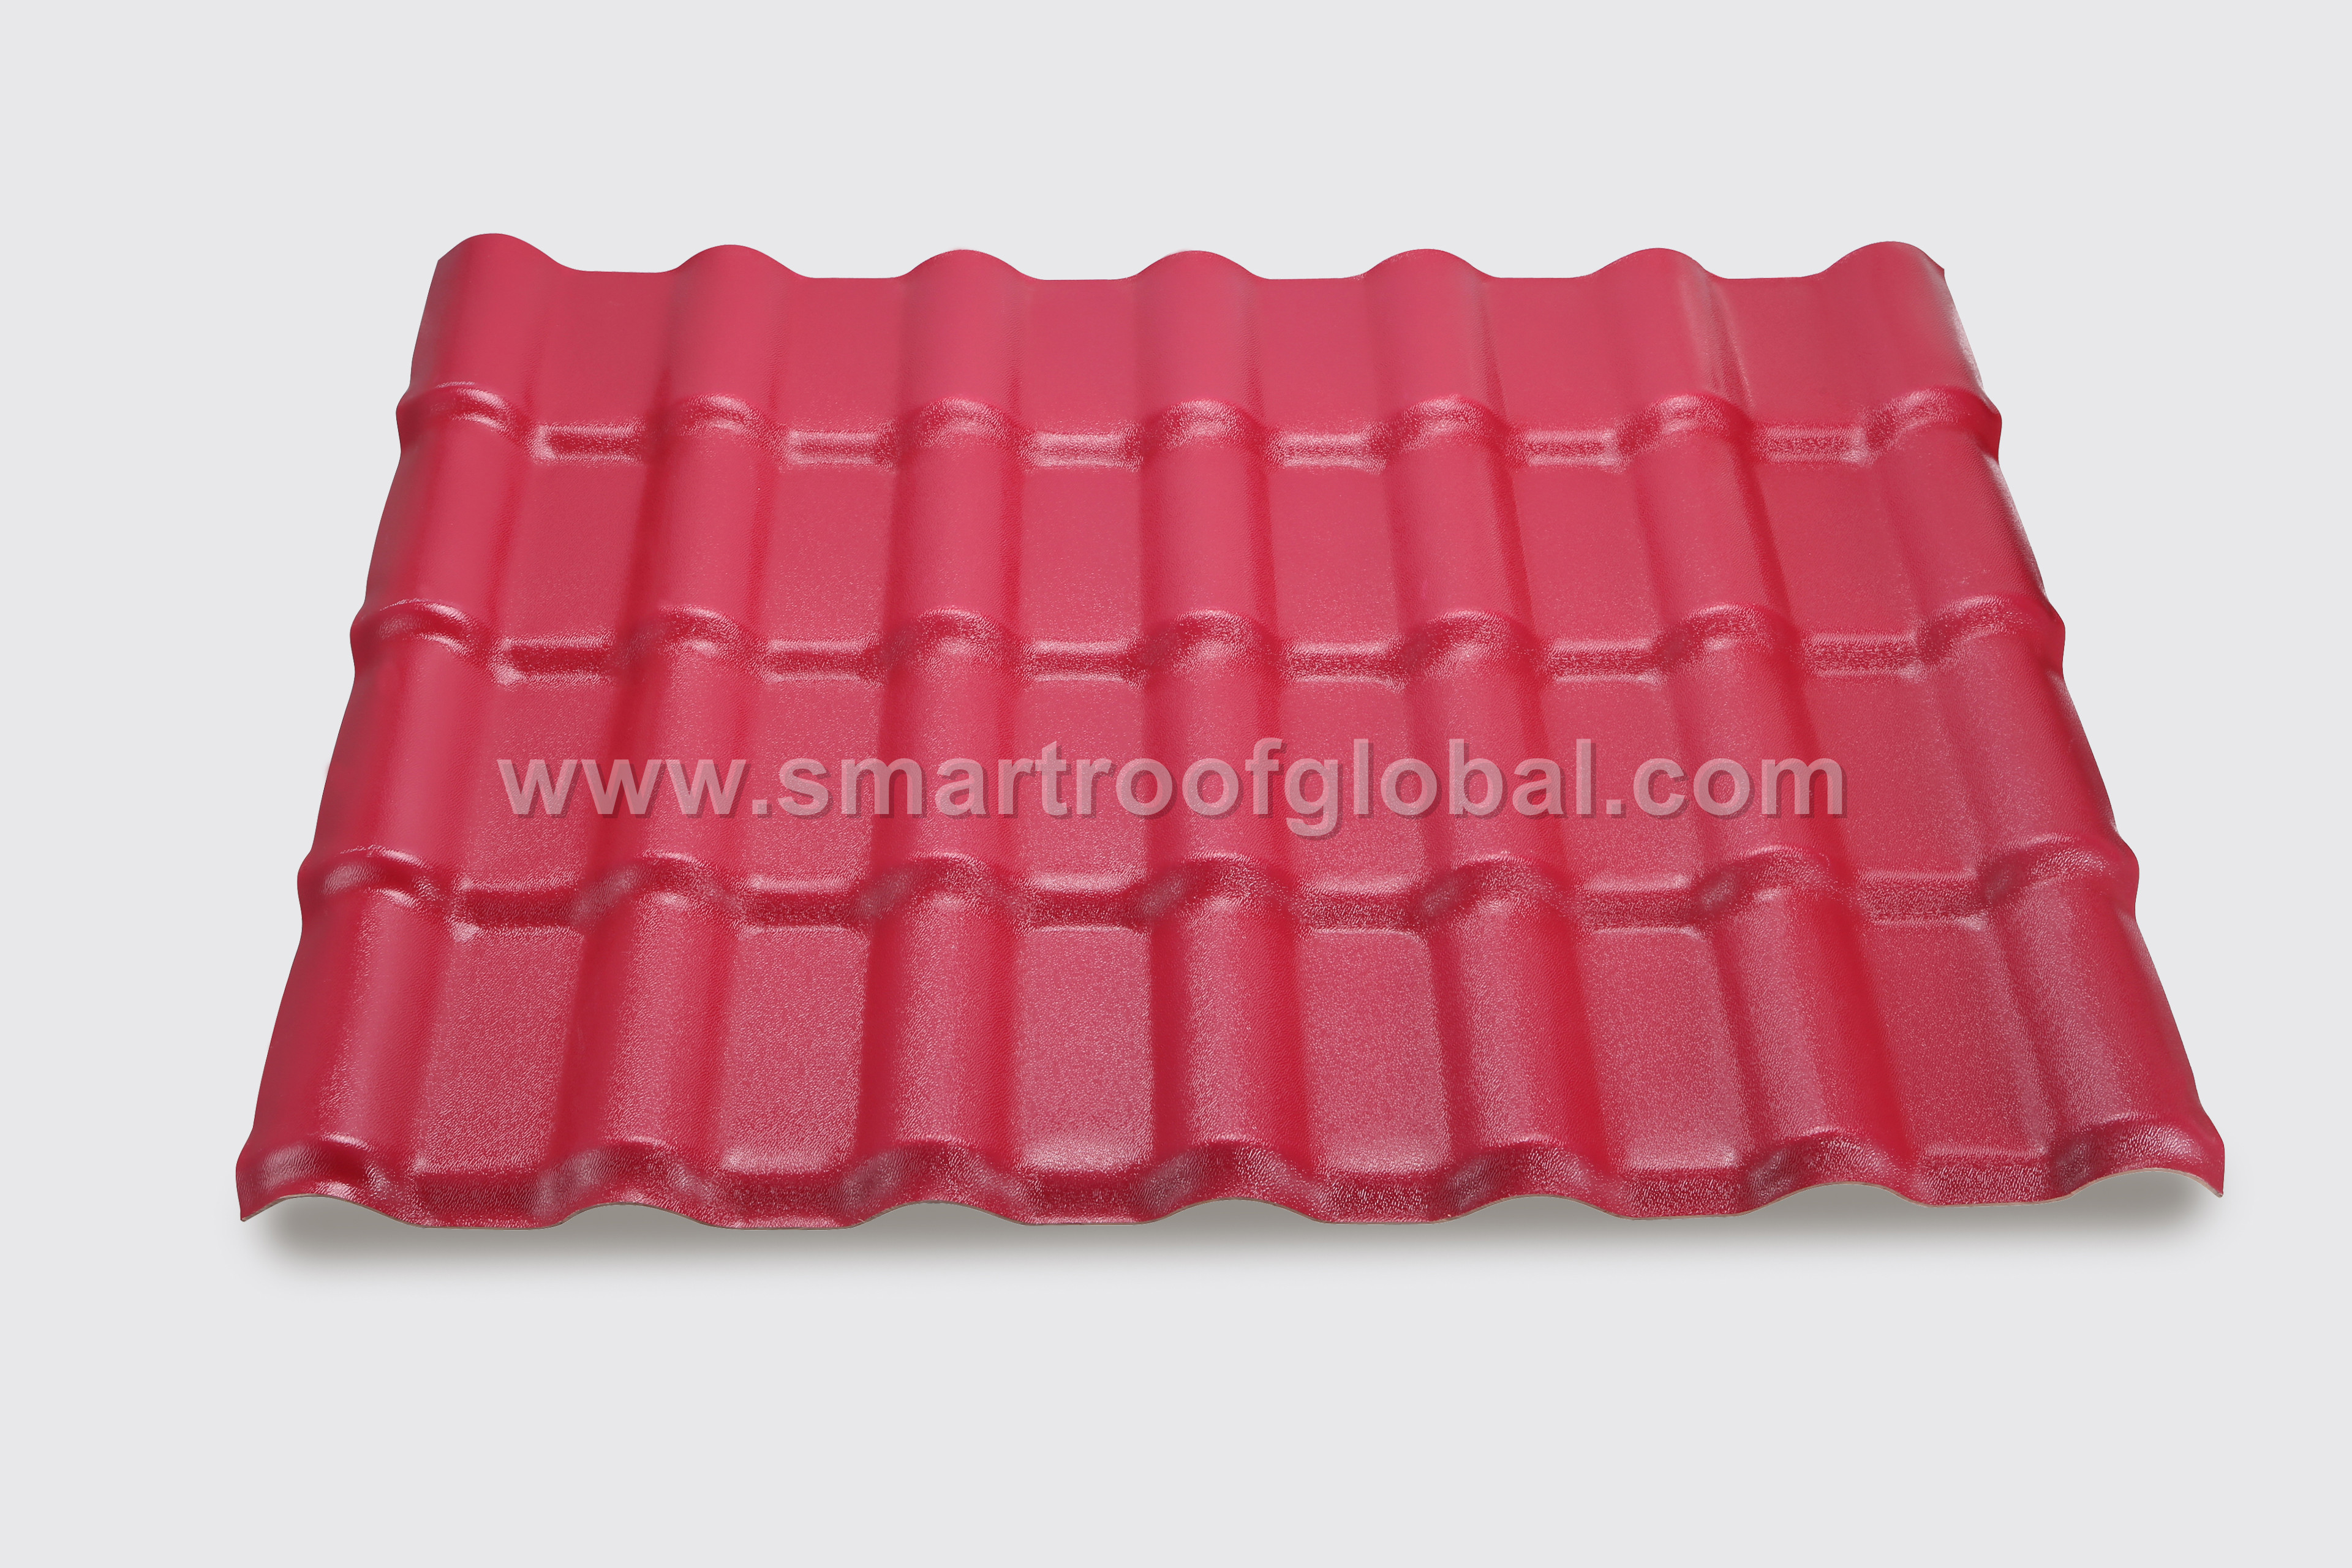 Plastic Resin Roof Tile Featured Image